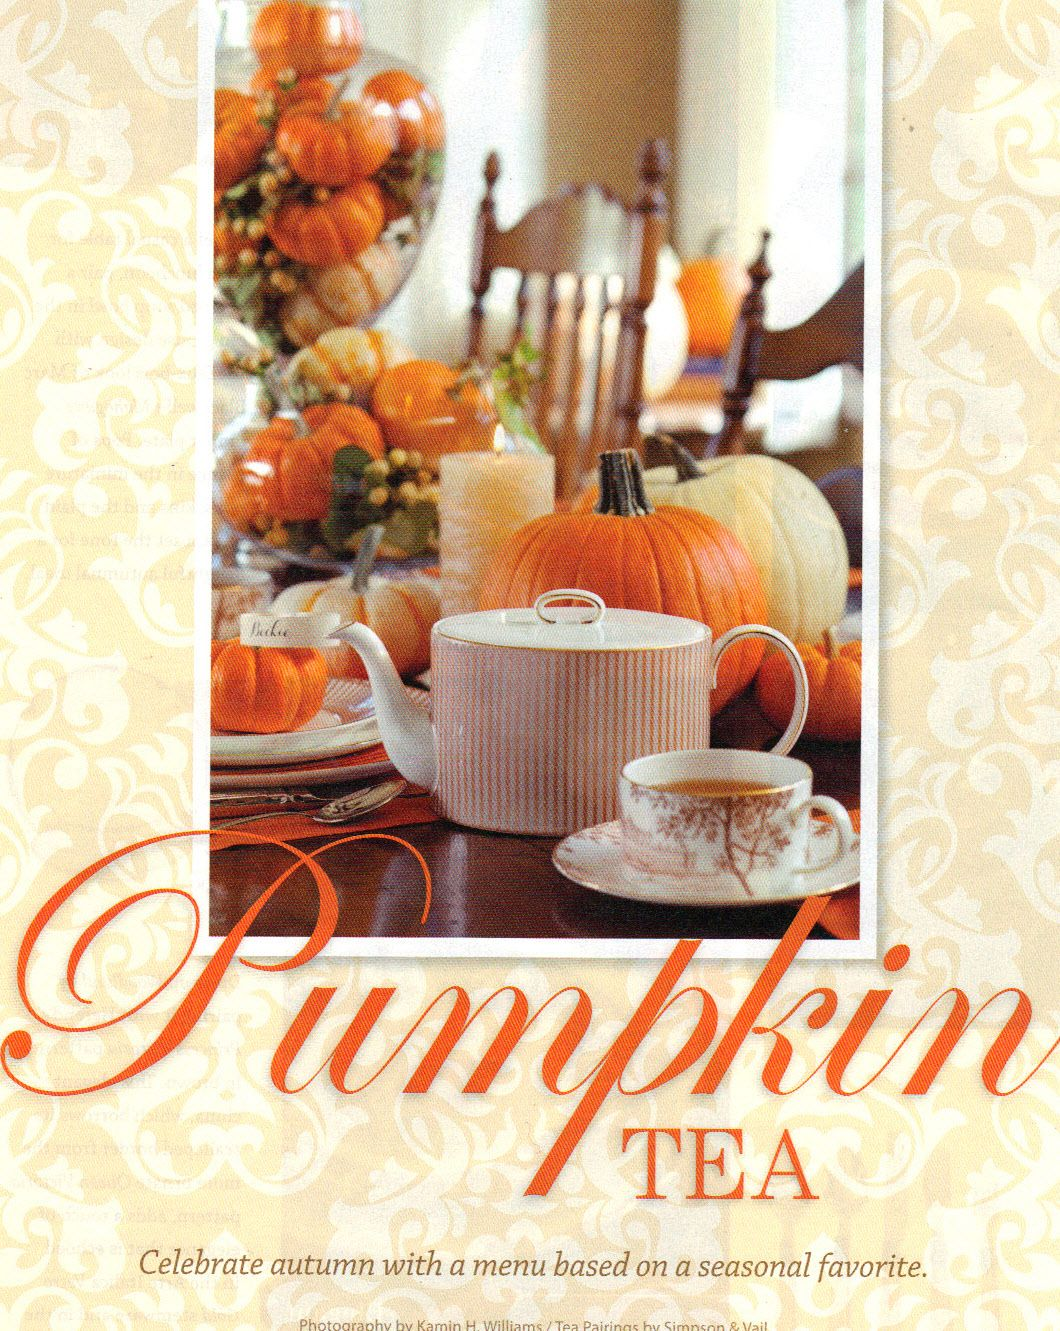 Simpson and Vail was featured in the Septenber/October issue of Tea Time Magazine #TeaTime #SVTEA  http://www.svtea.com/